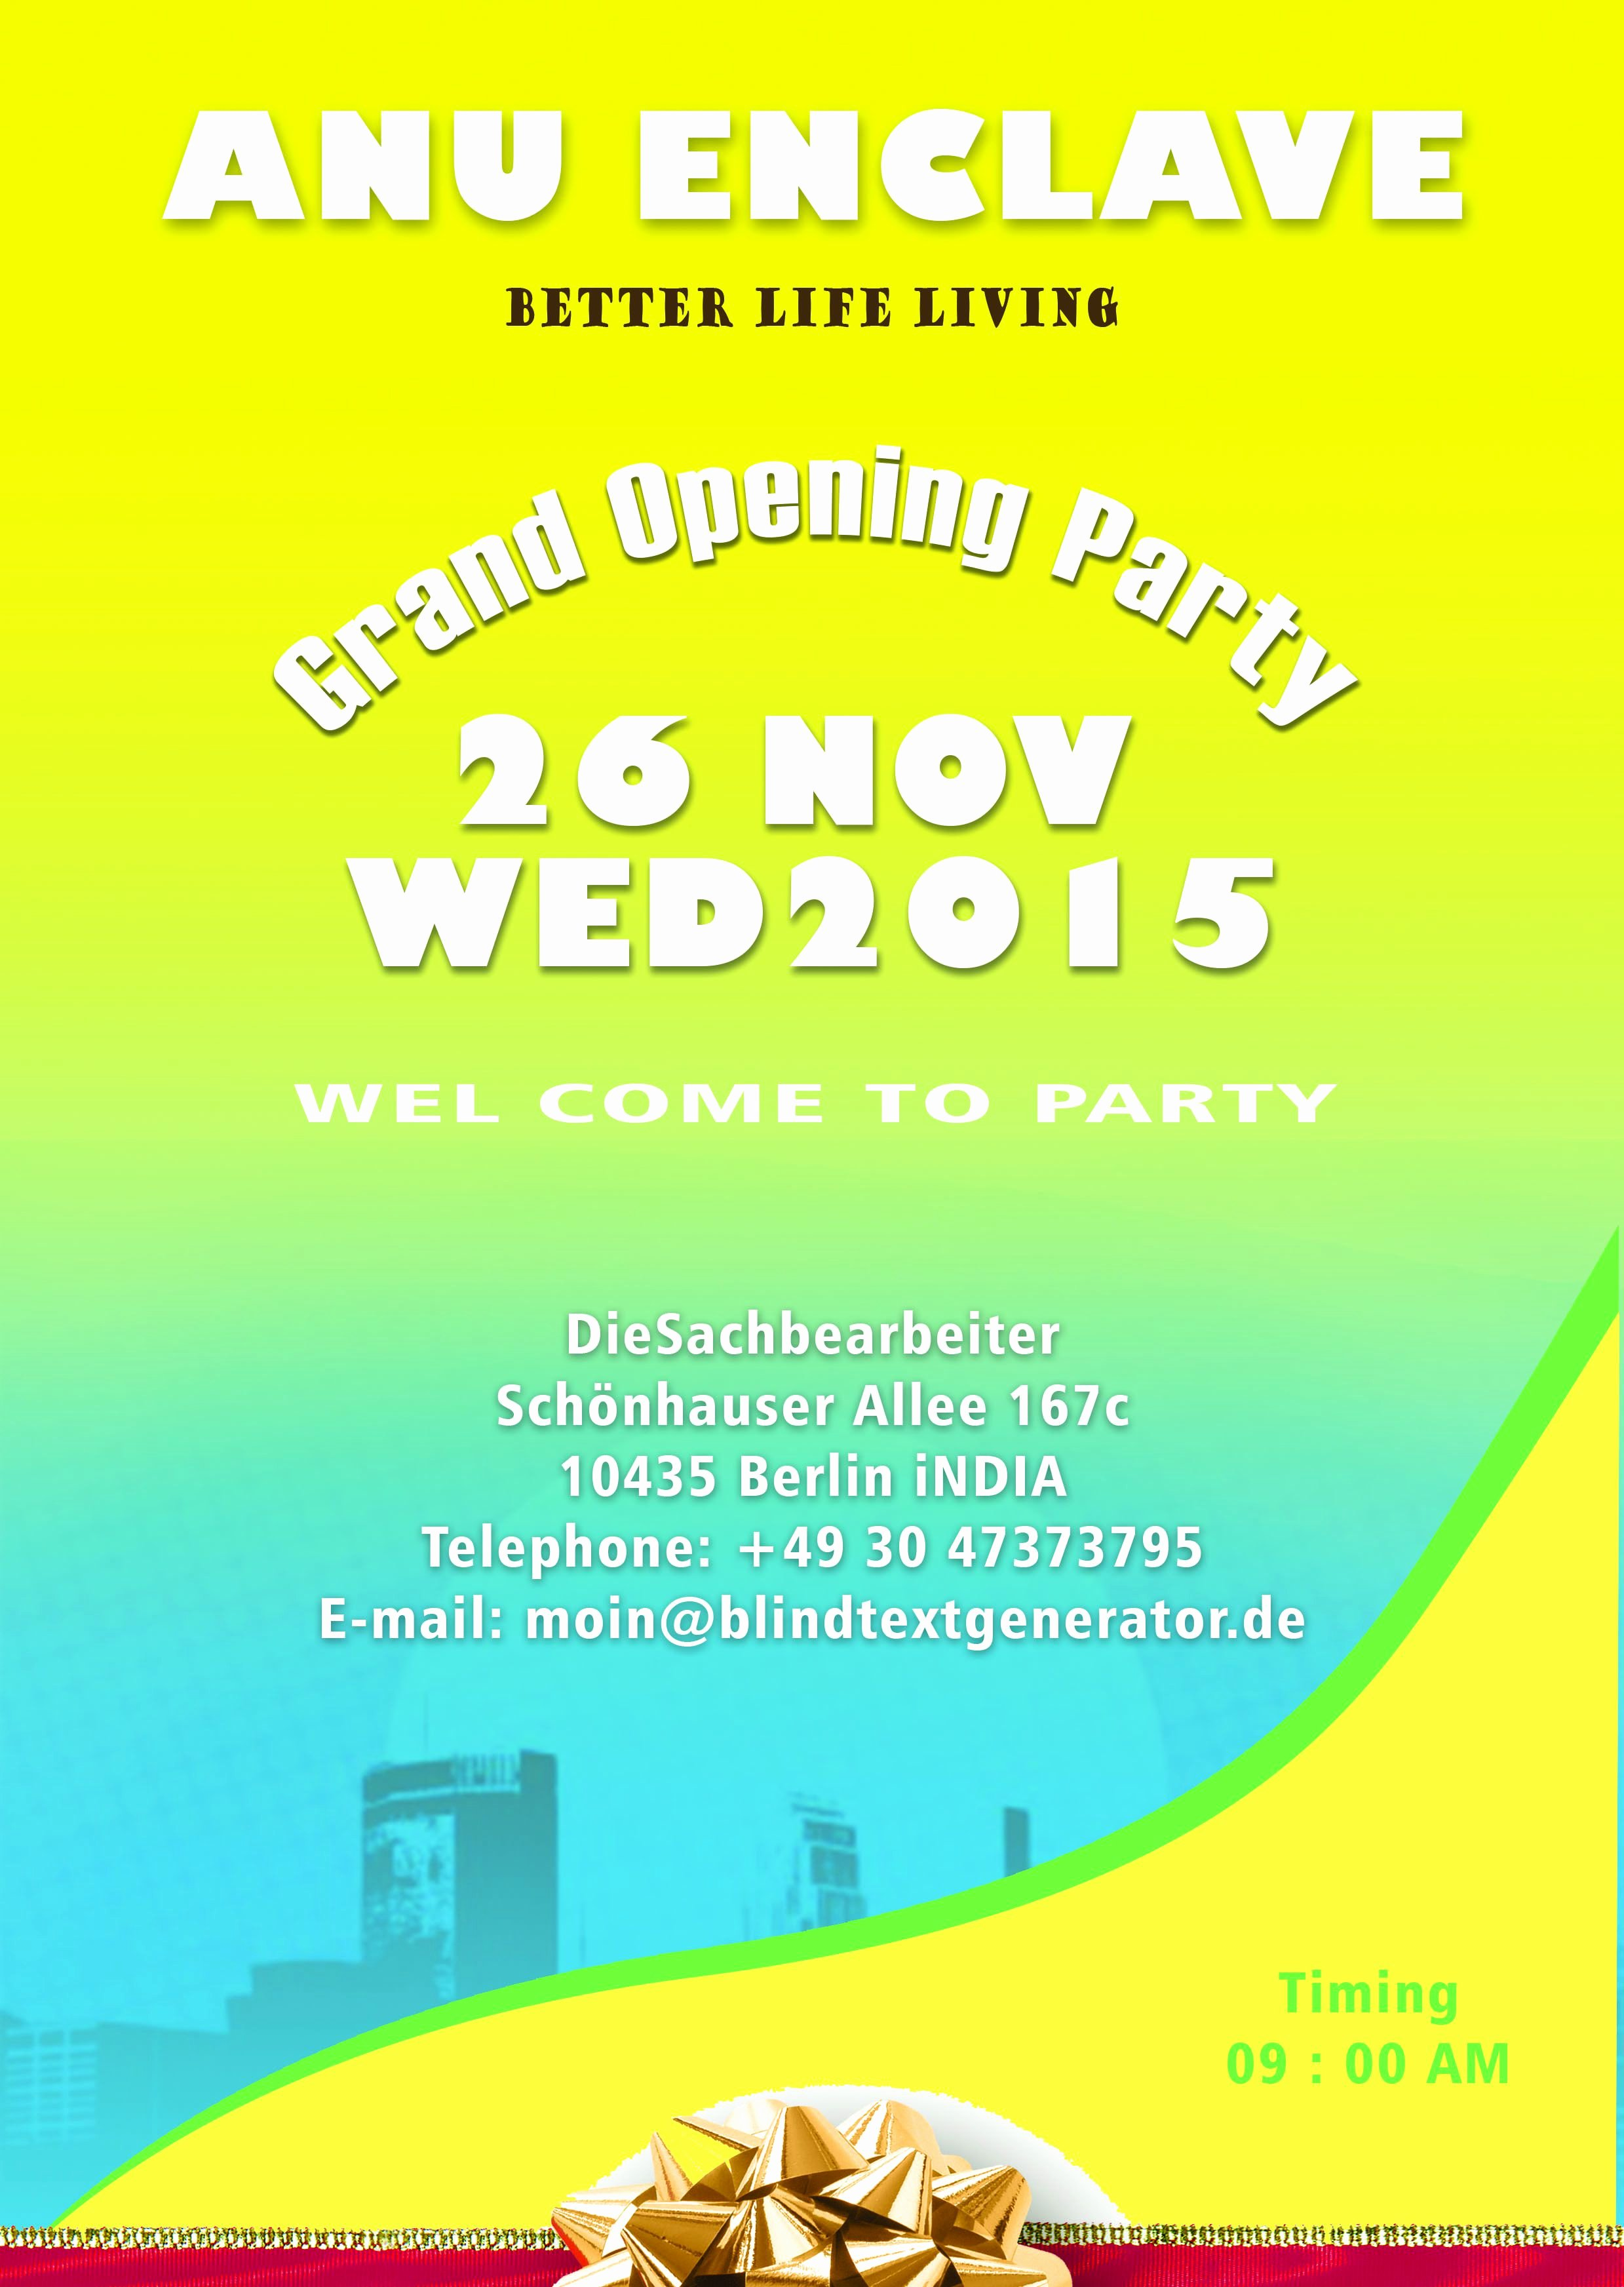 Grand Opening Flyer Template Beautiful 20 Grand Opening Flyer Templates Free Demplates